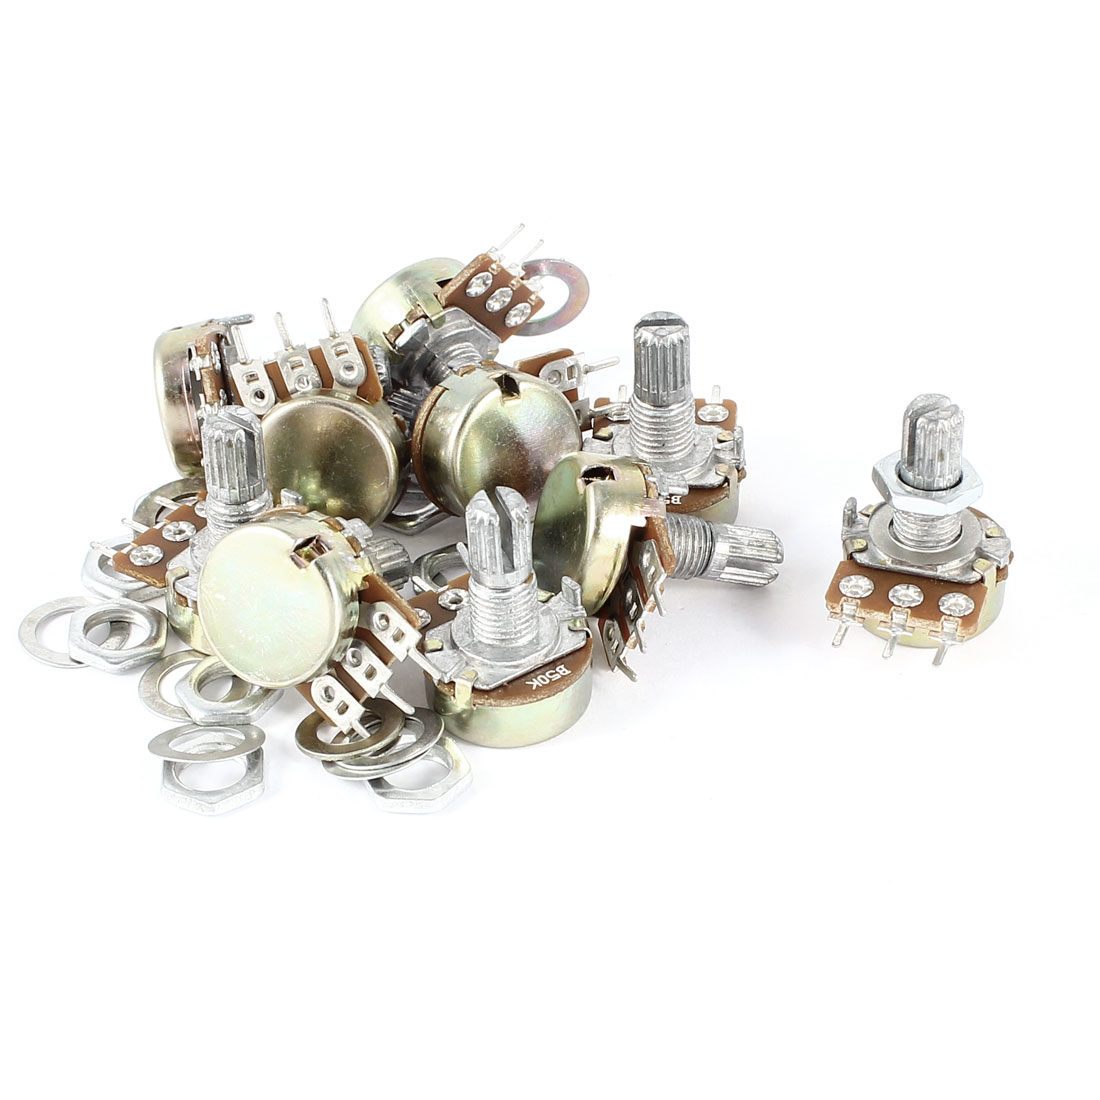 10 Pcs B503 50K Ohm 15mm Knurled Shaft Top Adjustment 3 Terminals Single Linear Rotary Taper Potentiometer Panel Pot